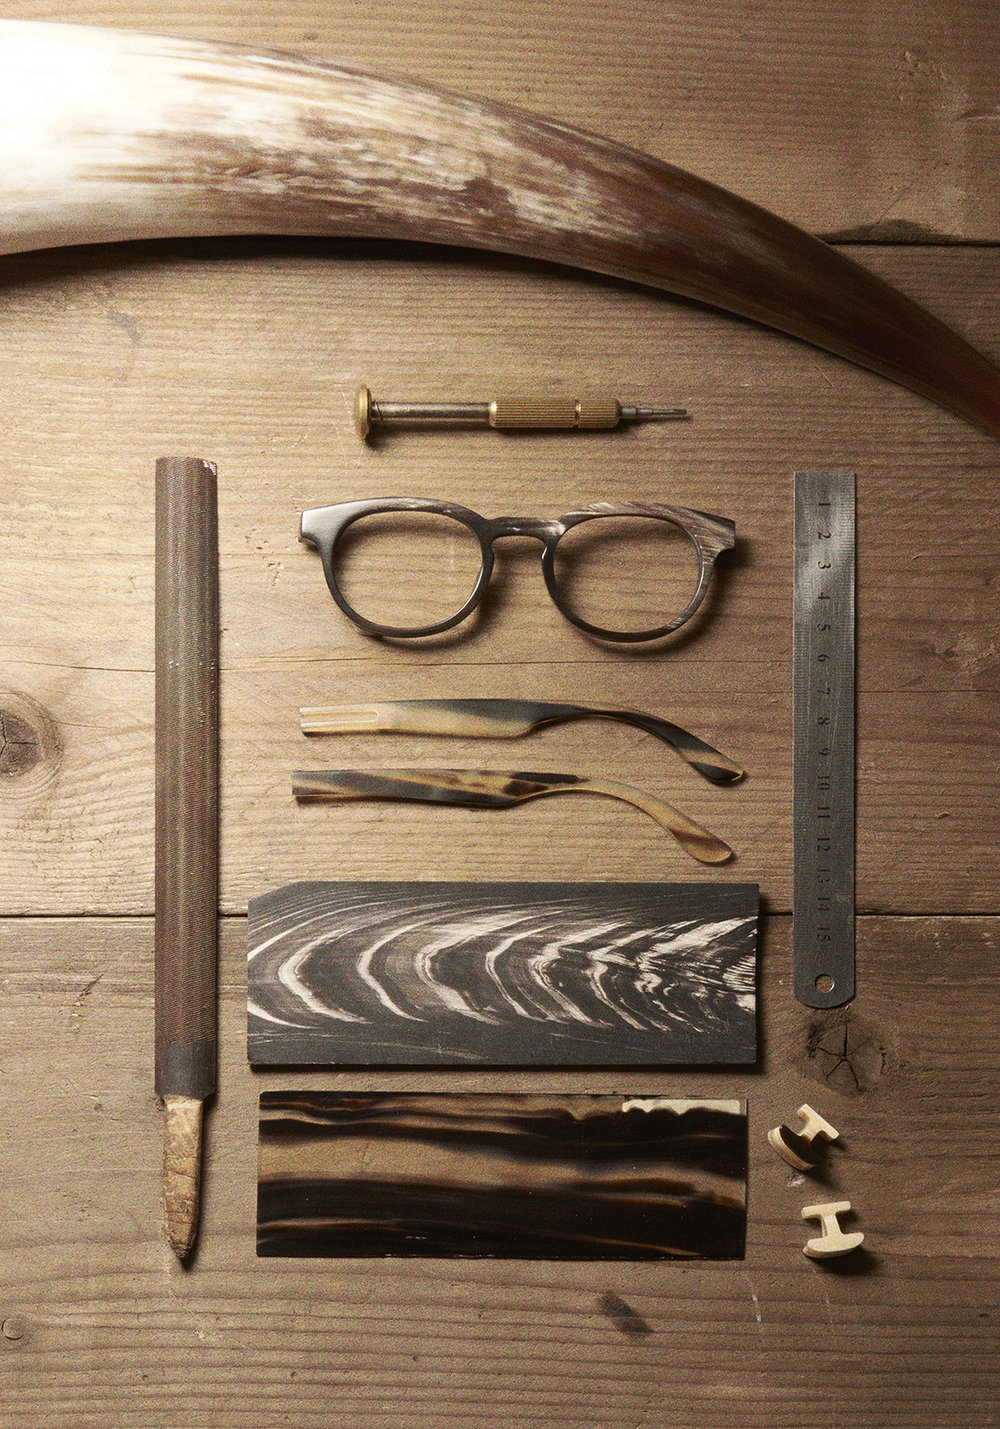 The tools used for the hand-crafted bespoke frames.